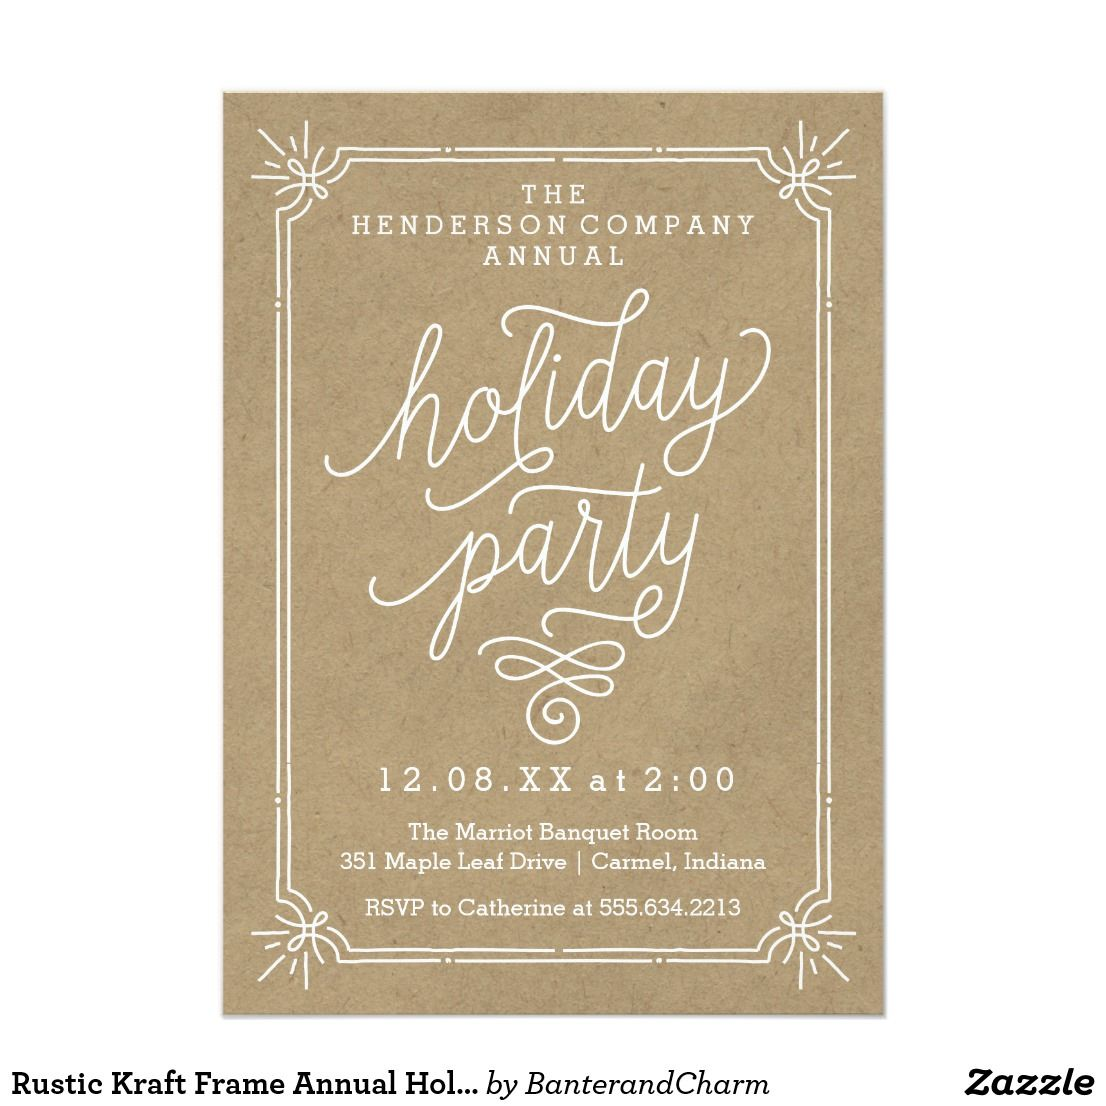 Rustic Kraft Frame Annual Holiday Party Invite